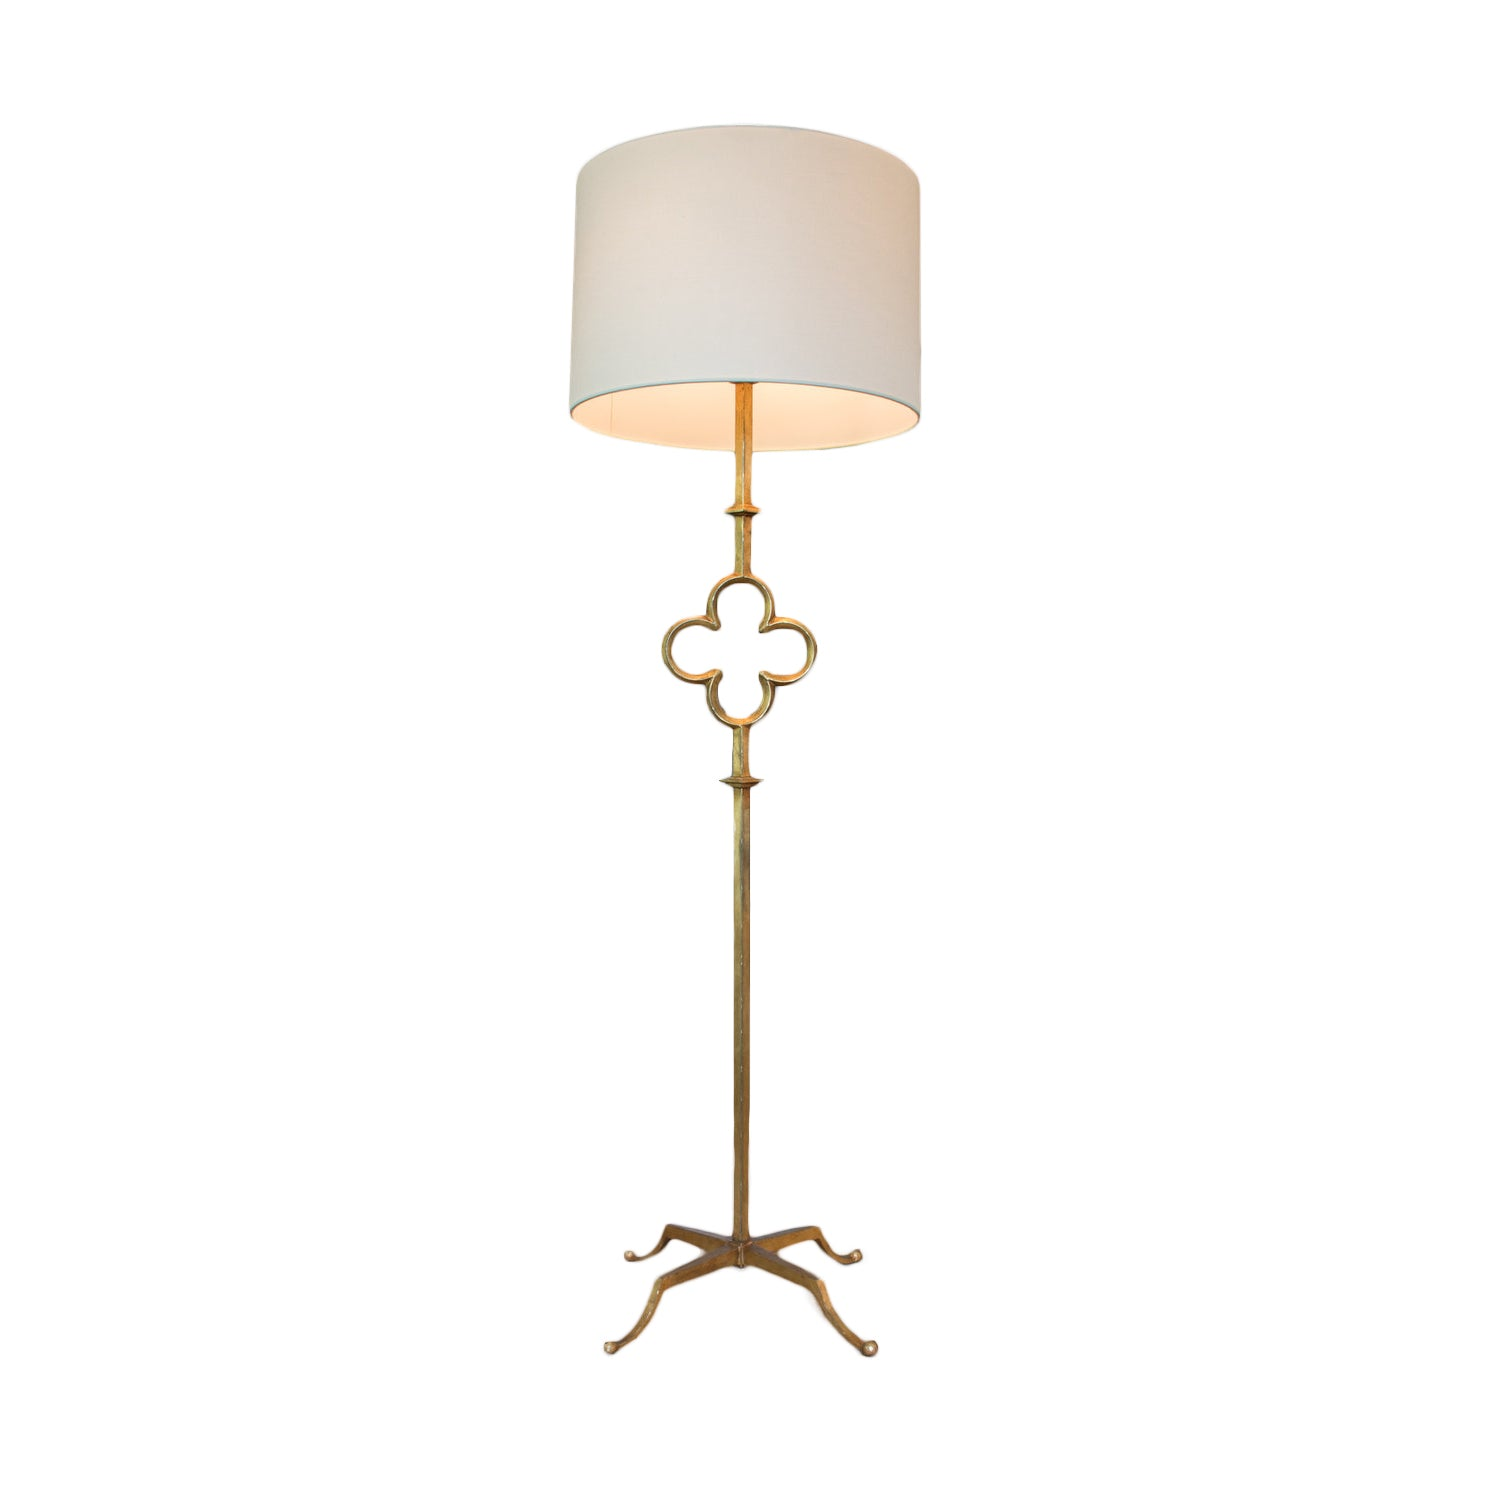 Quatrefoil Floor Lamp in Gilded Iron with Wax with Linen Shade